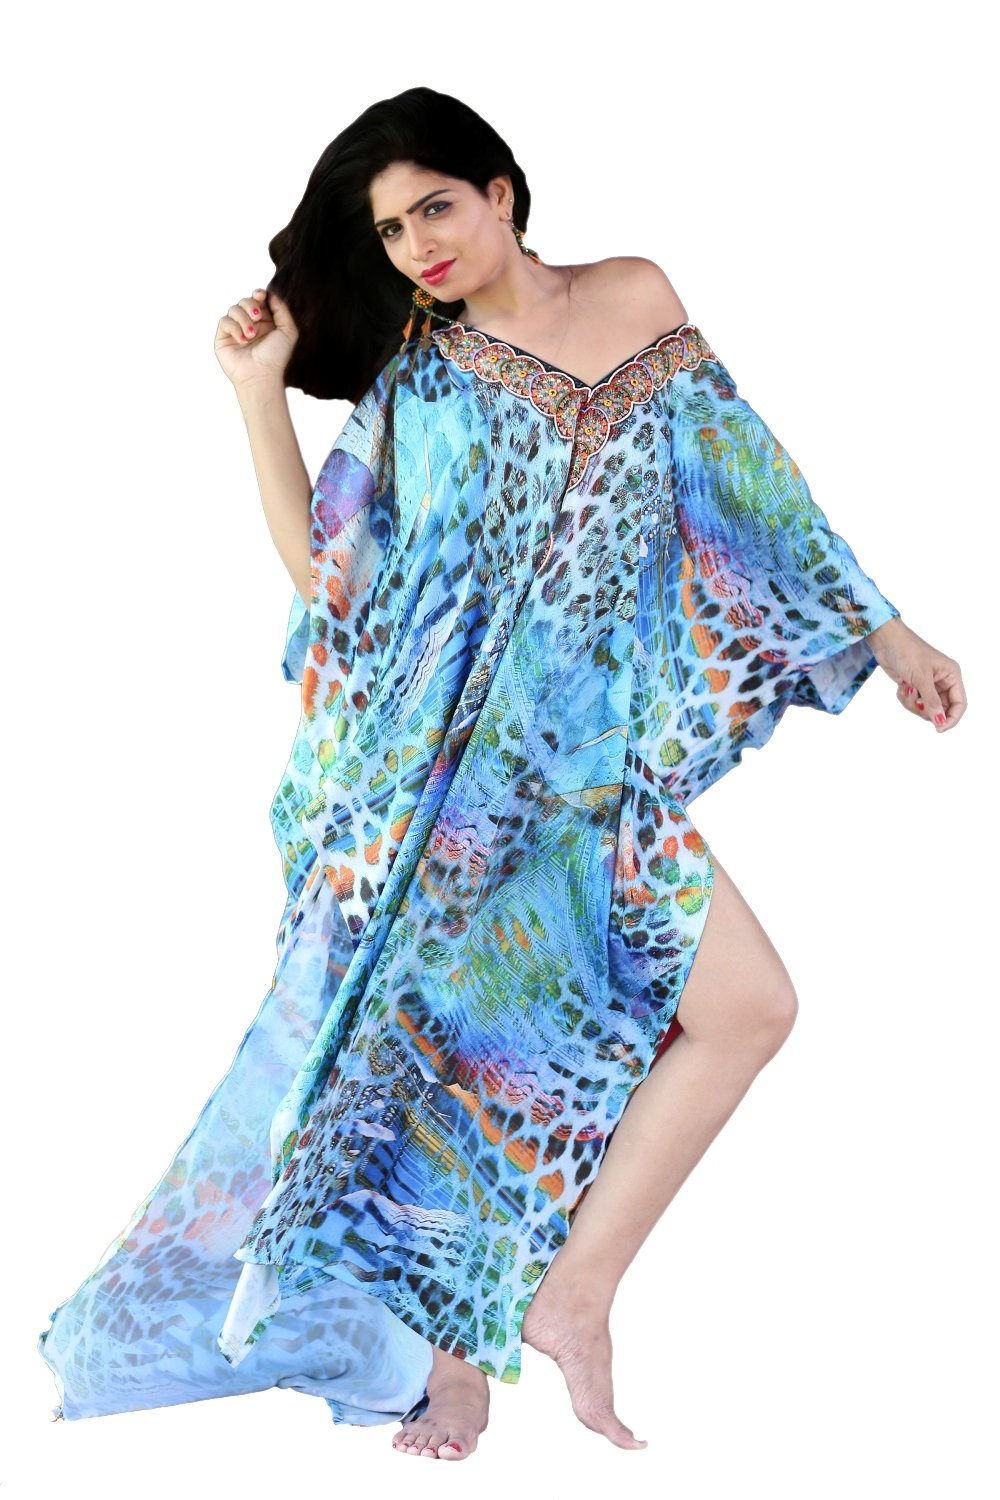 Stylish Marine Coloured Silk Kaftan Dress with Animal Print kaftan Cruise wear kaftan Elegant kaftan - Silk kaftan